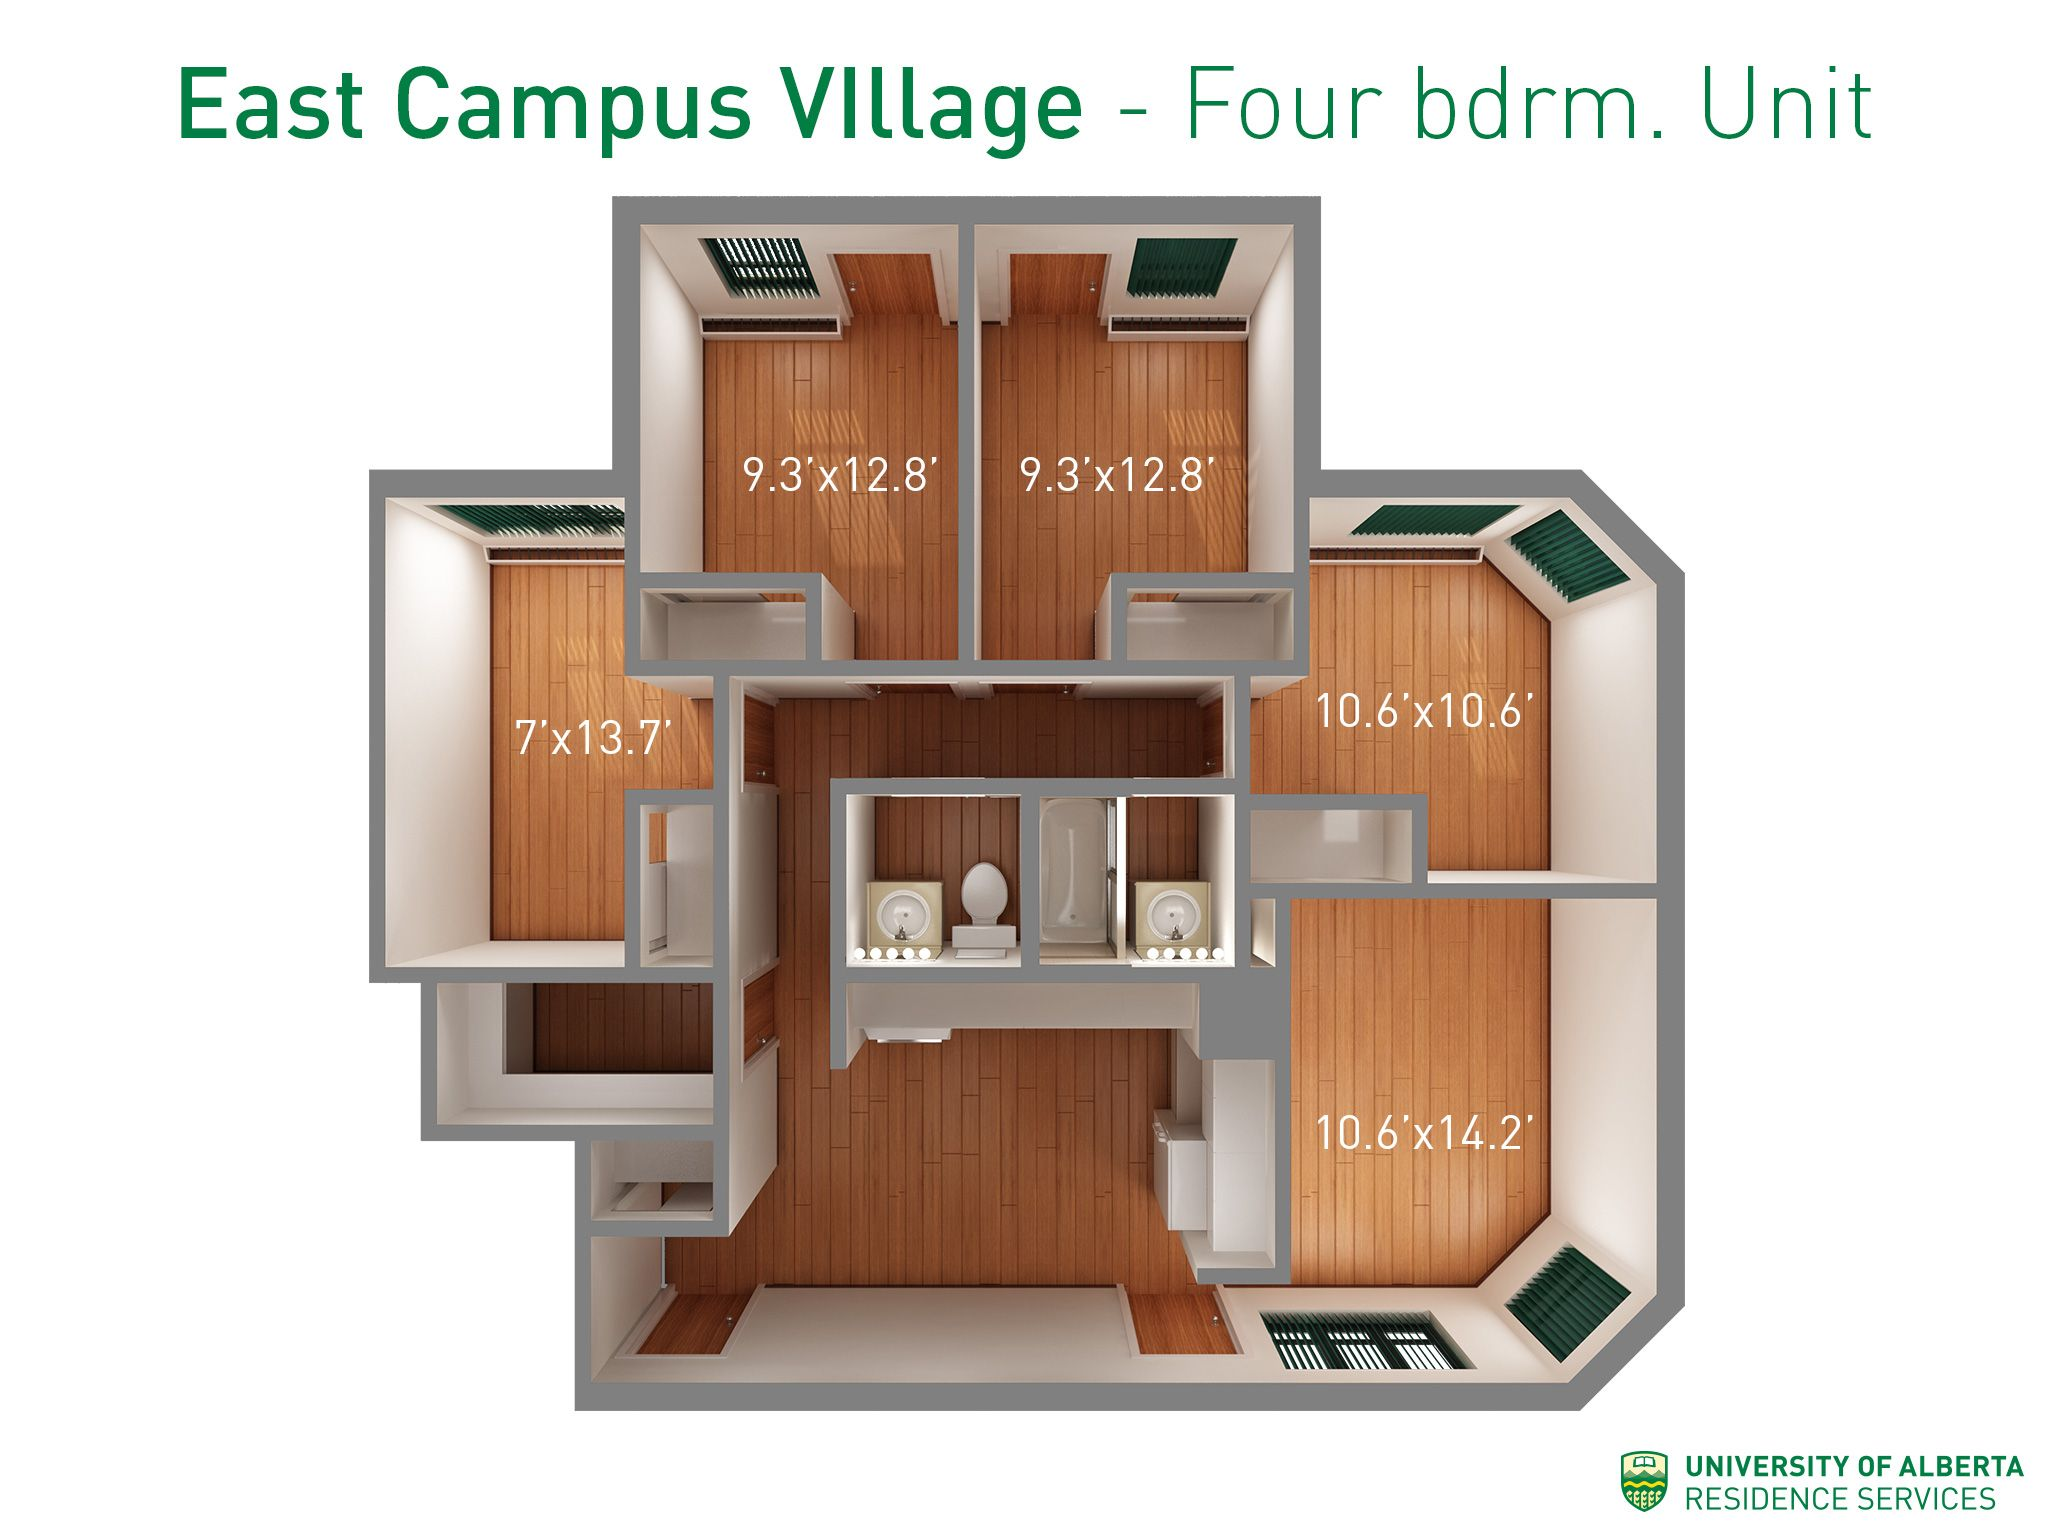 Floorplan With Dimensions For Four Bedroom Units In East Campus Village House Plans Floor Plans Housing Options